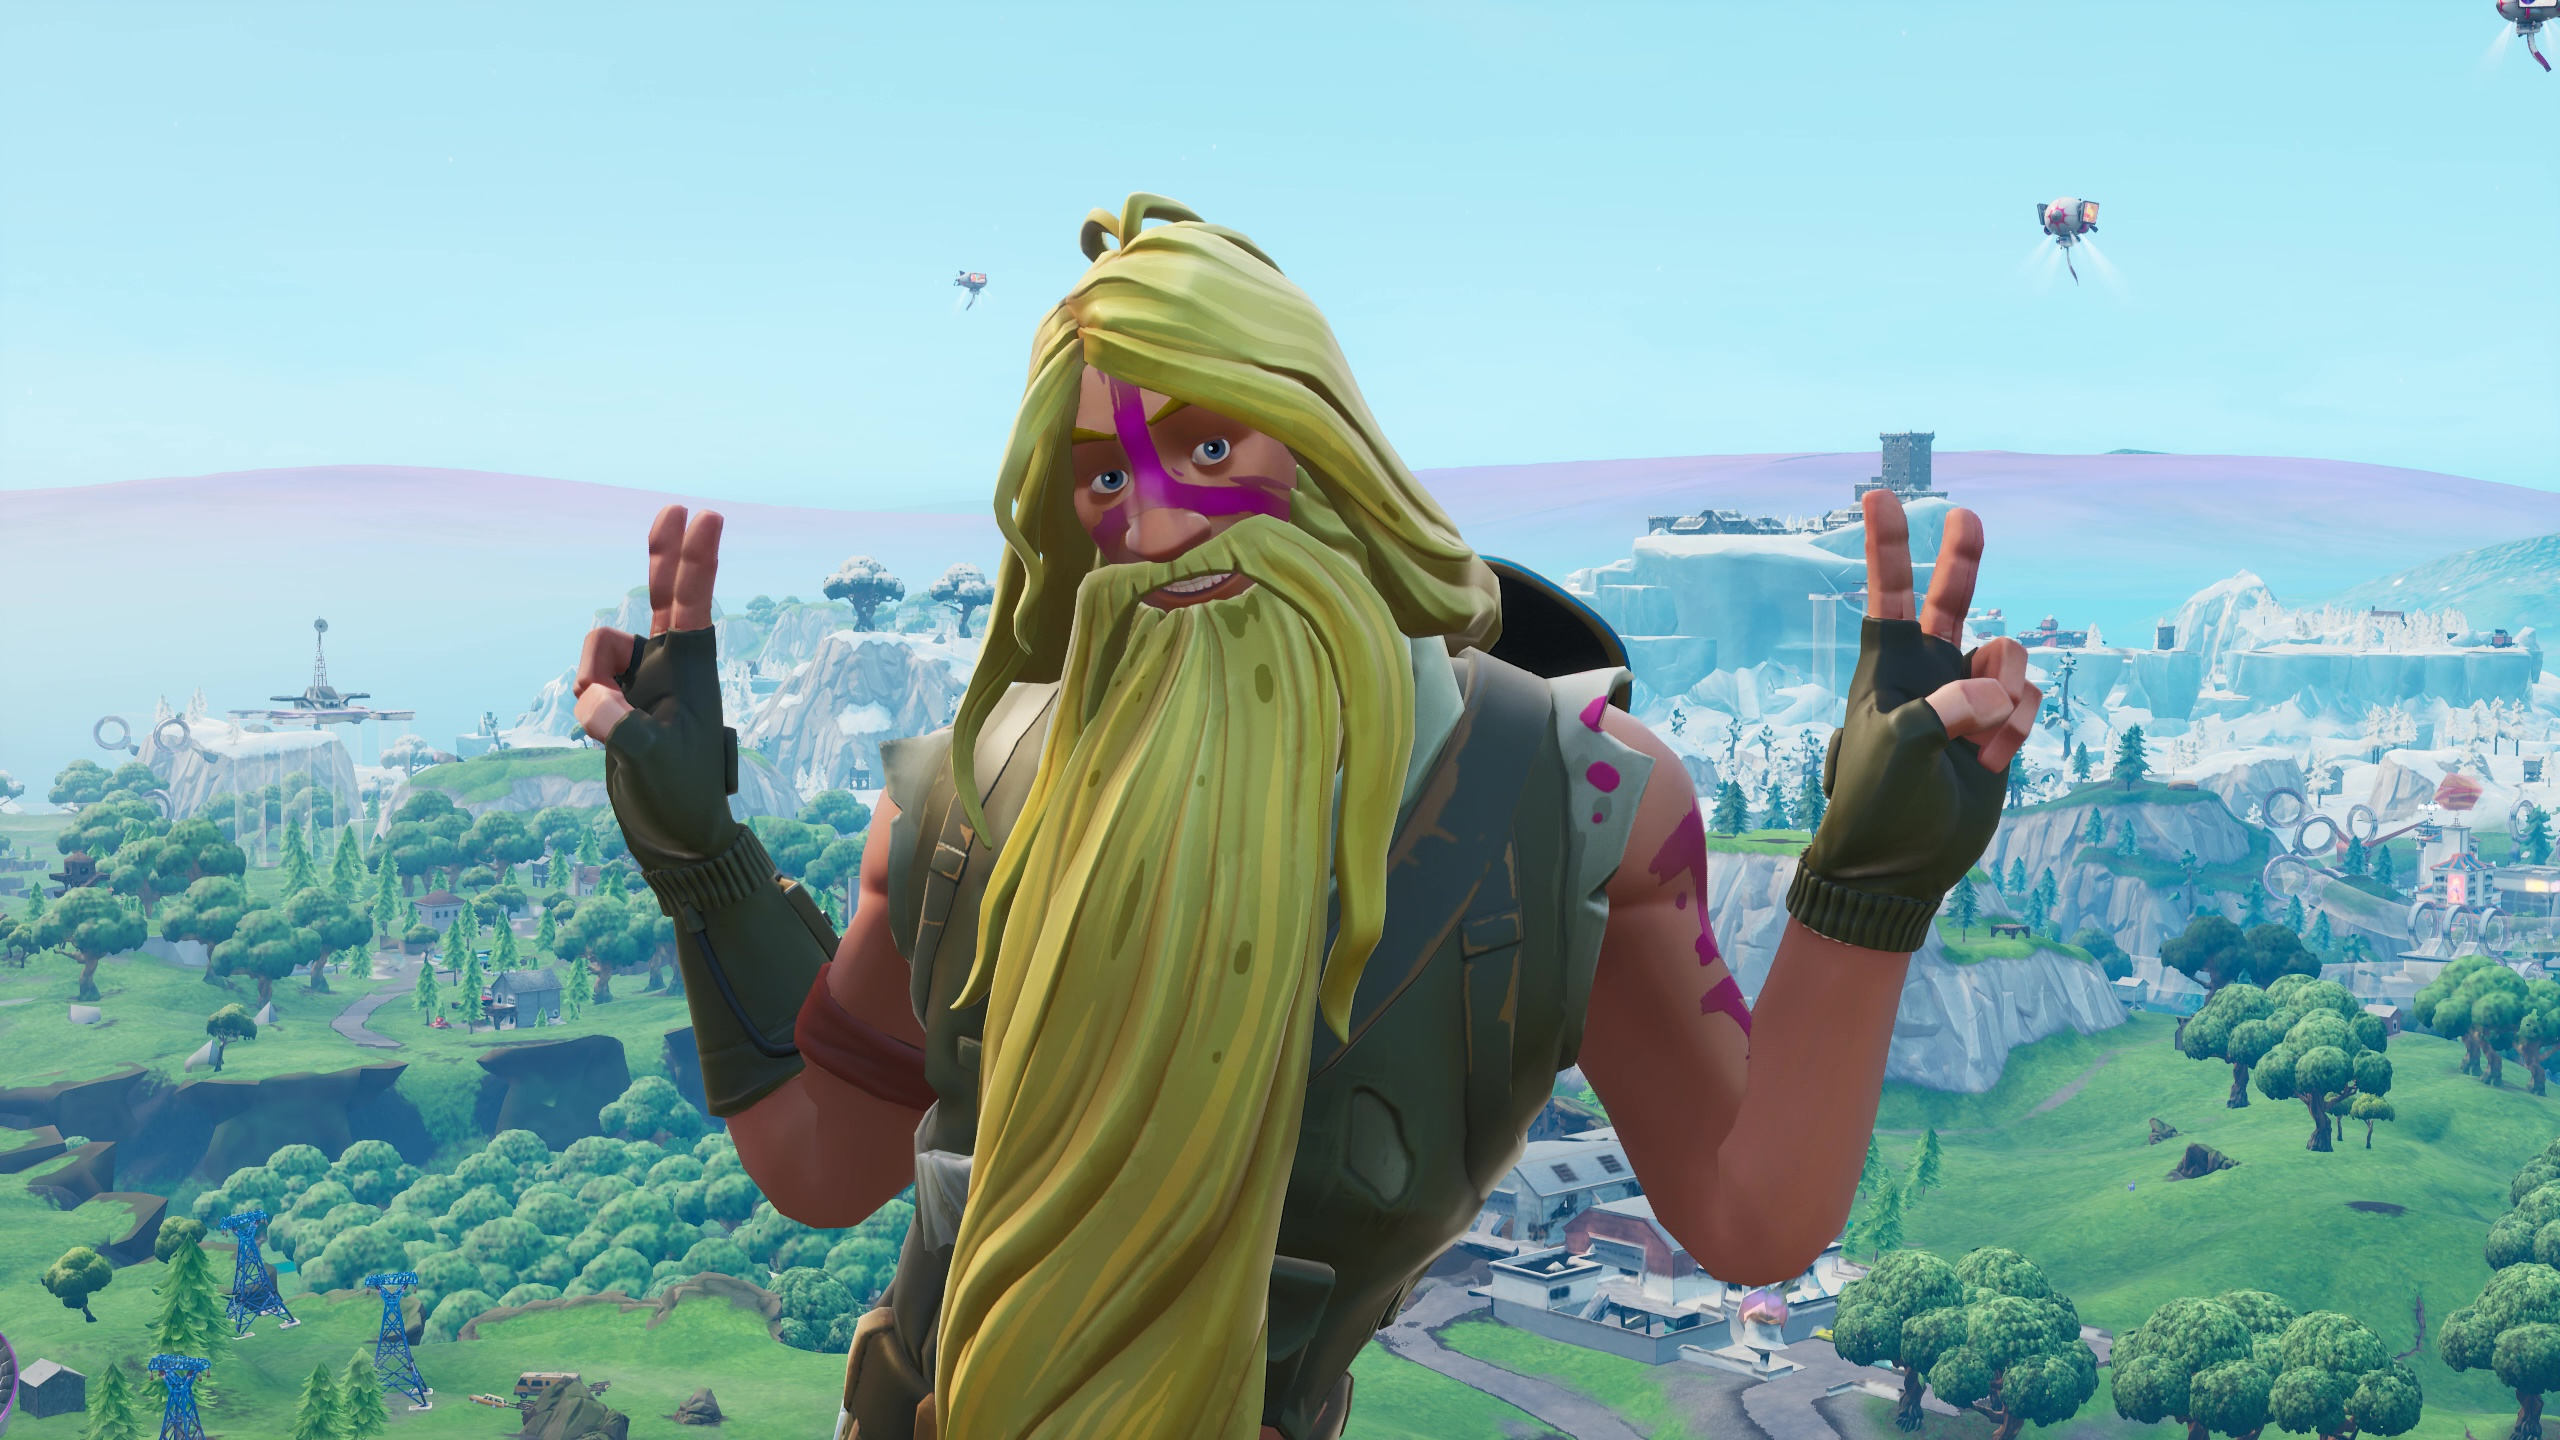 Fortnite Fortbytes locations: where to find all Fortbytes unlocked